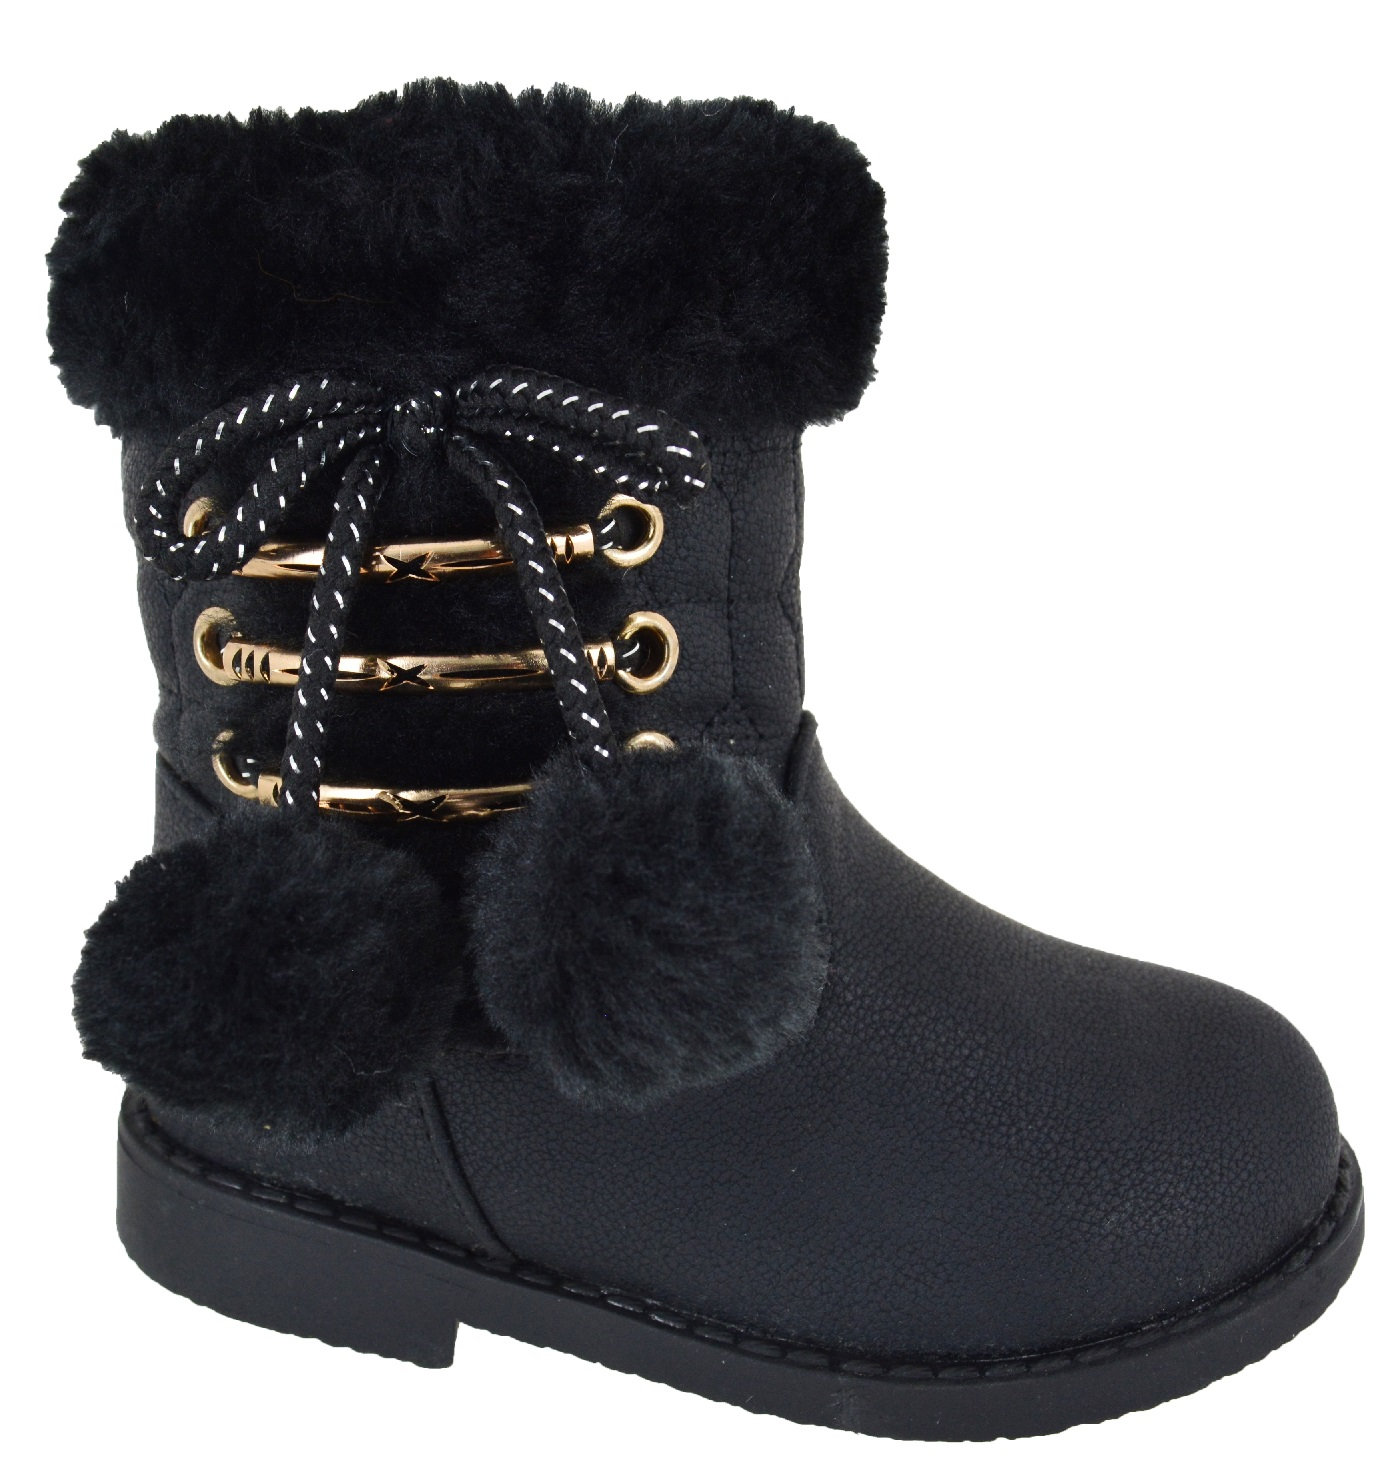 Kids Babies Girls Toodlers Ankle Grip Sole Boots Warm